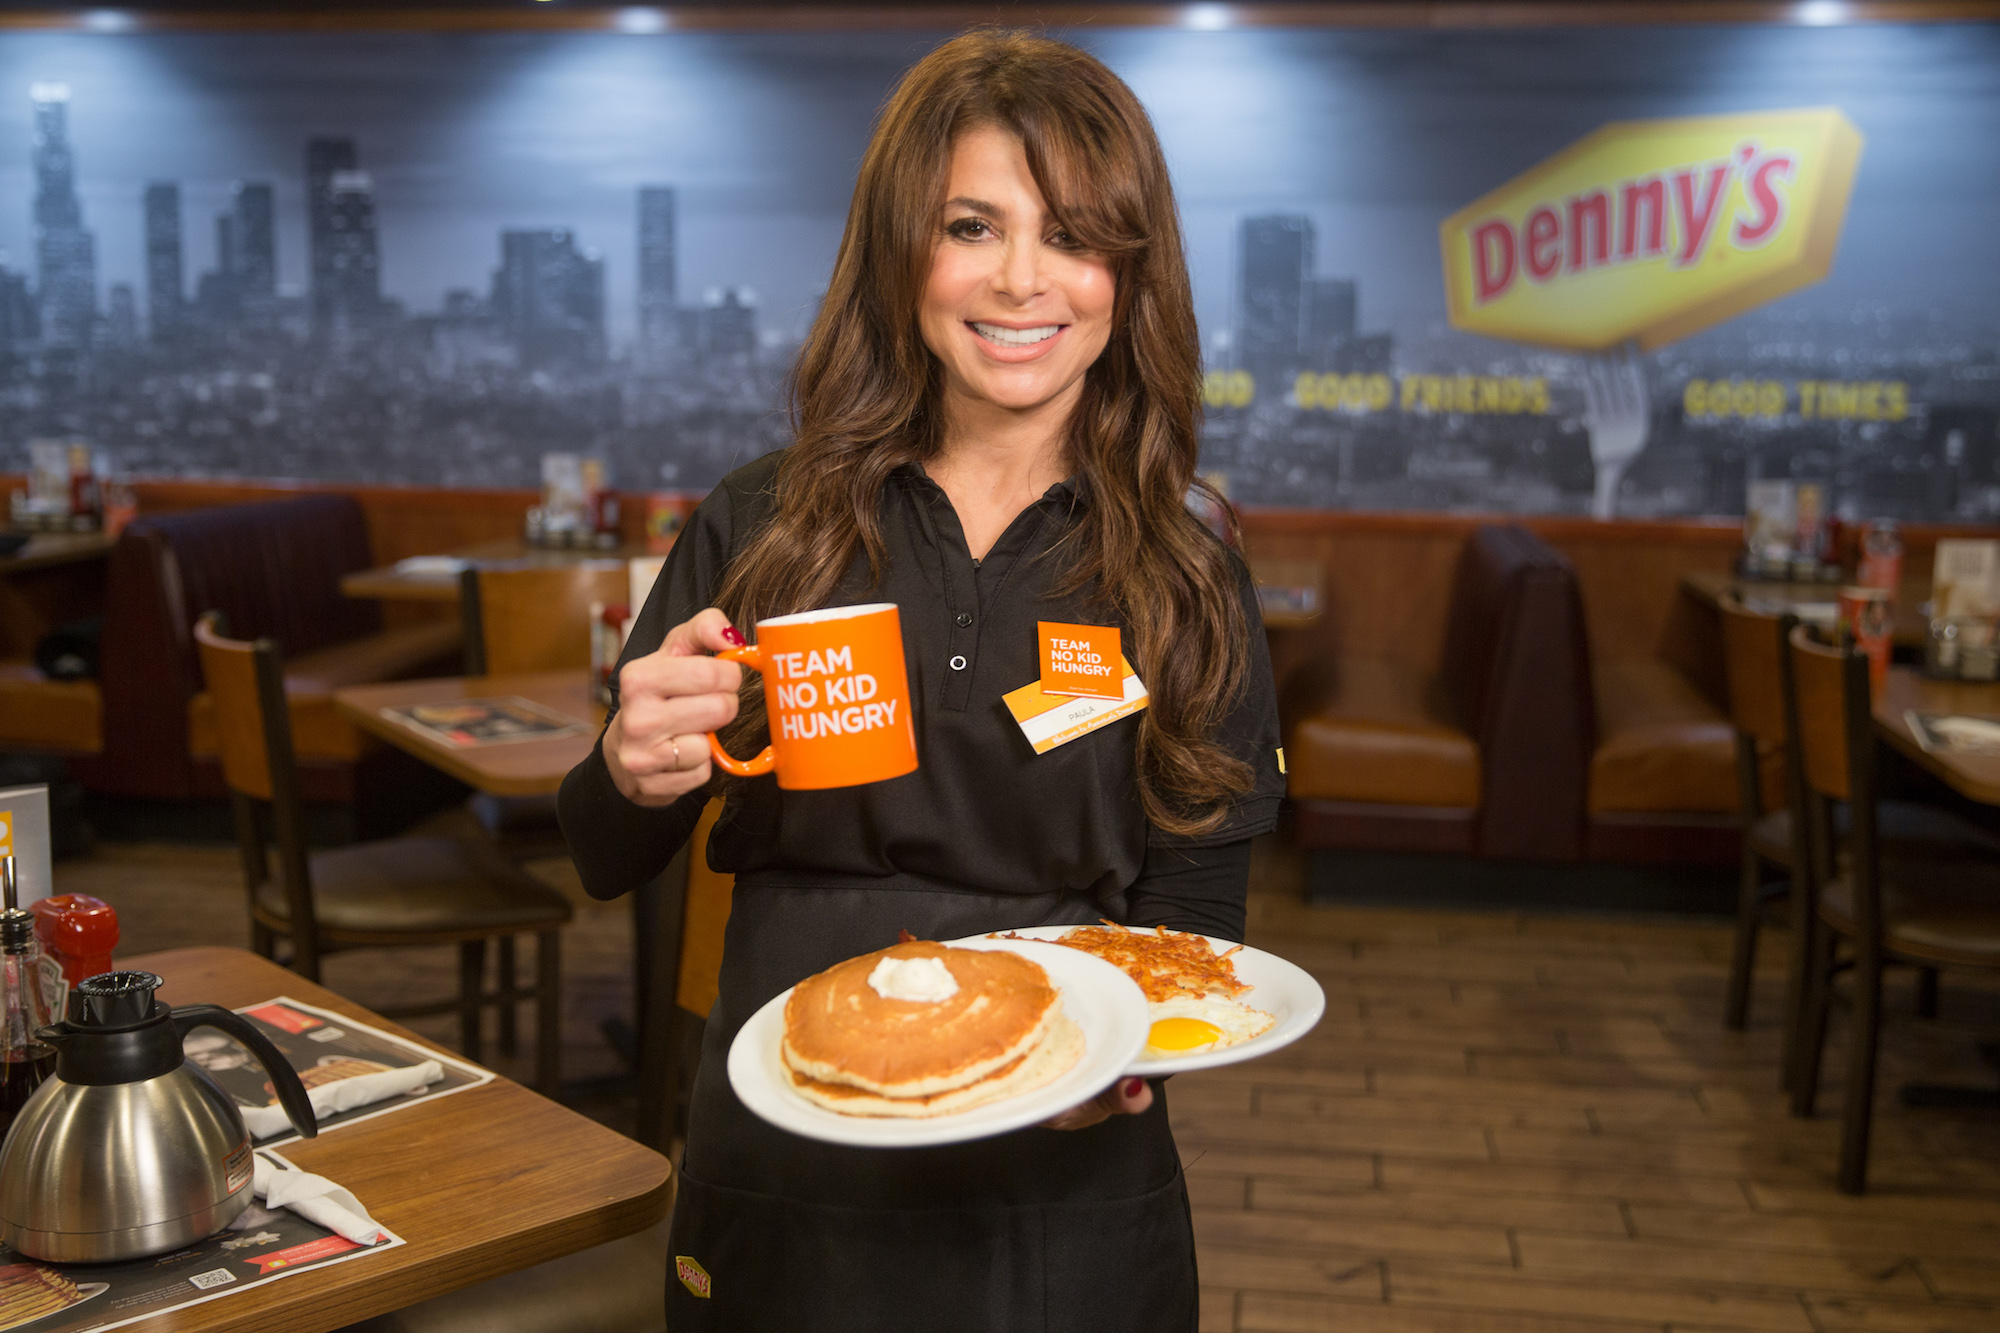 paula-abdul-supports-dine-out-for-no-kid-hungry